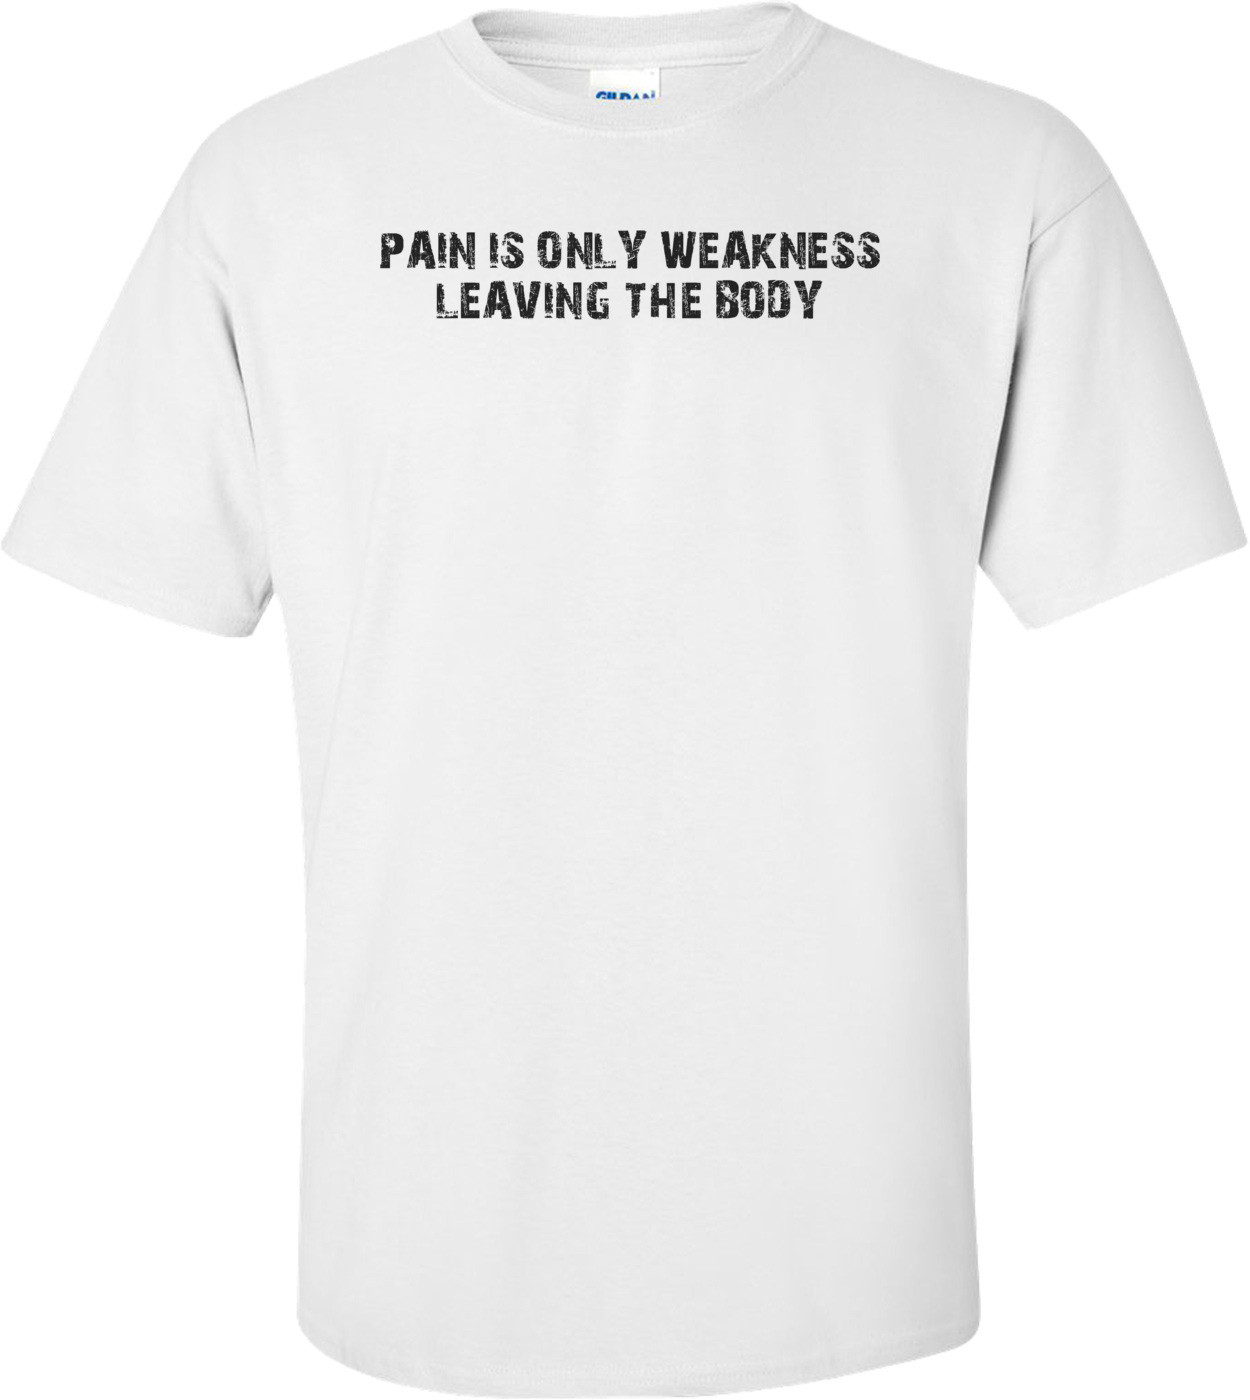 PAIN IS ONLY WEAKNESS LEAVING THE BODY Shirt